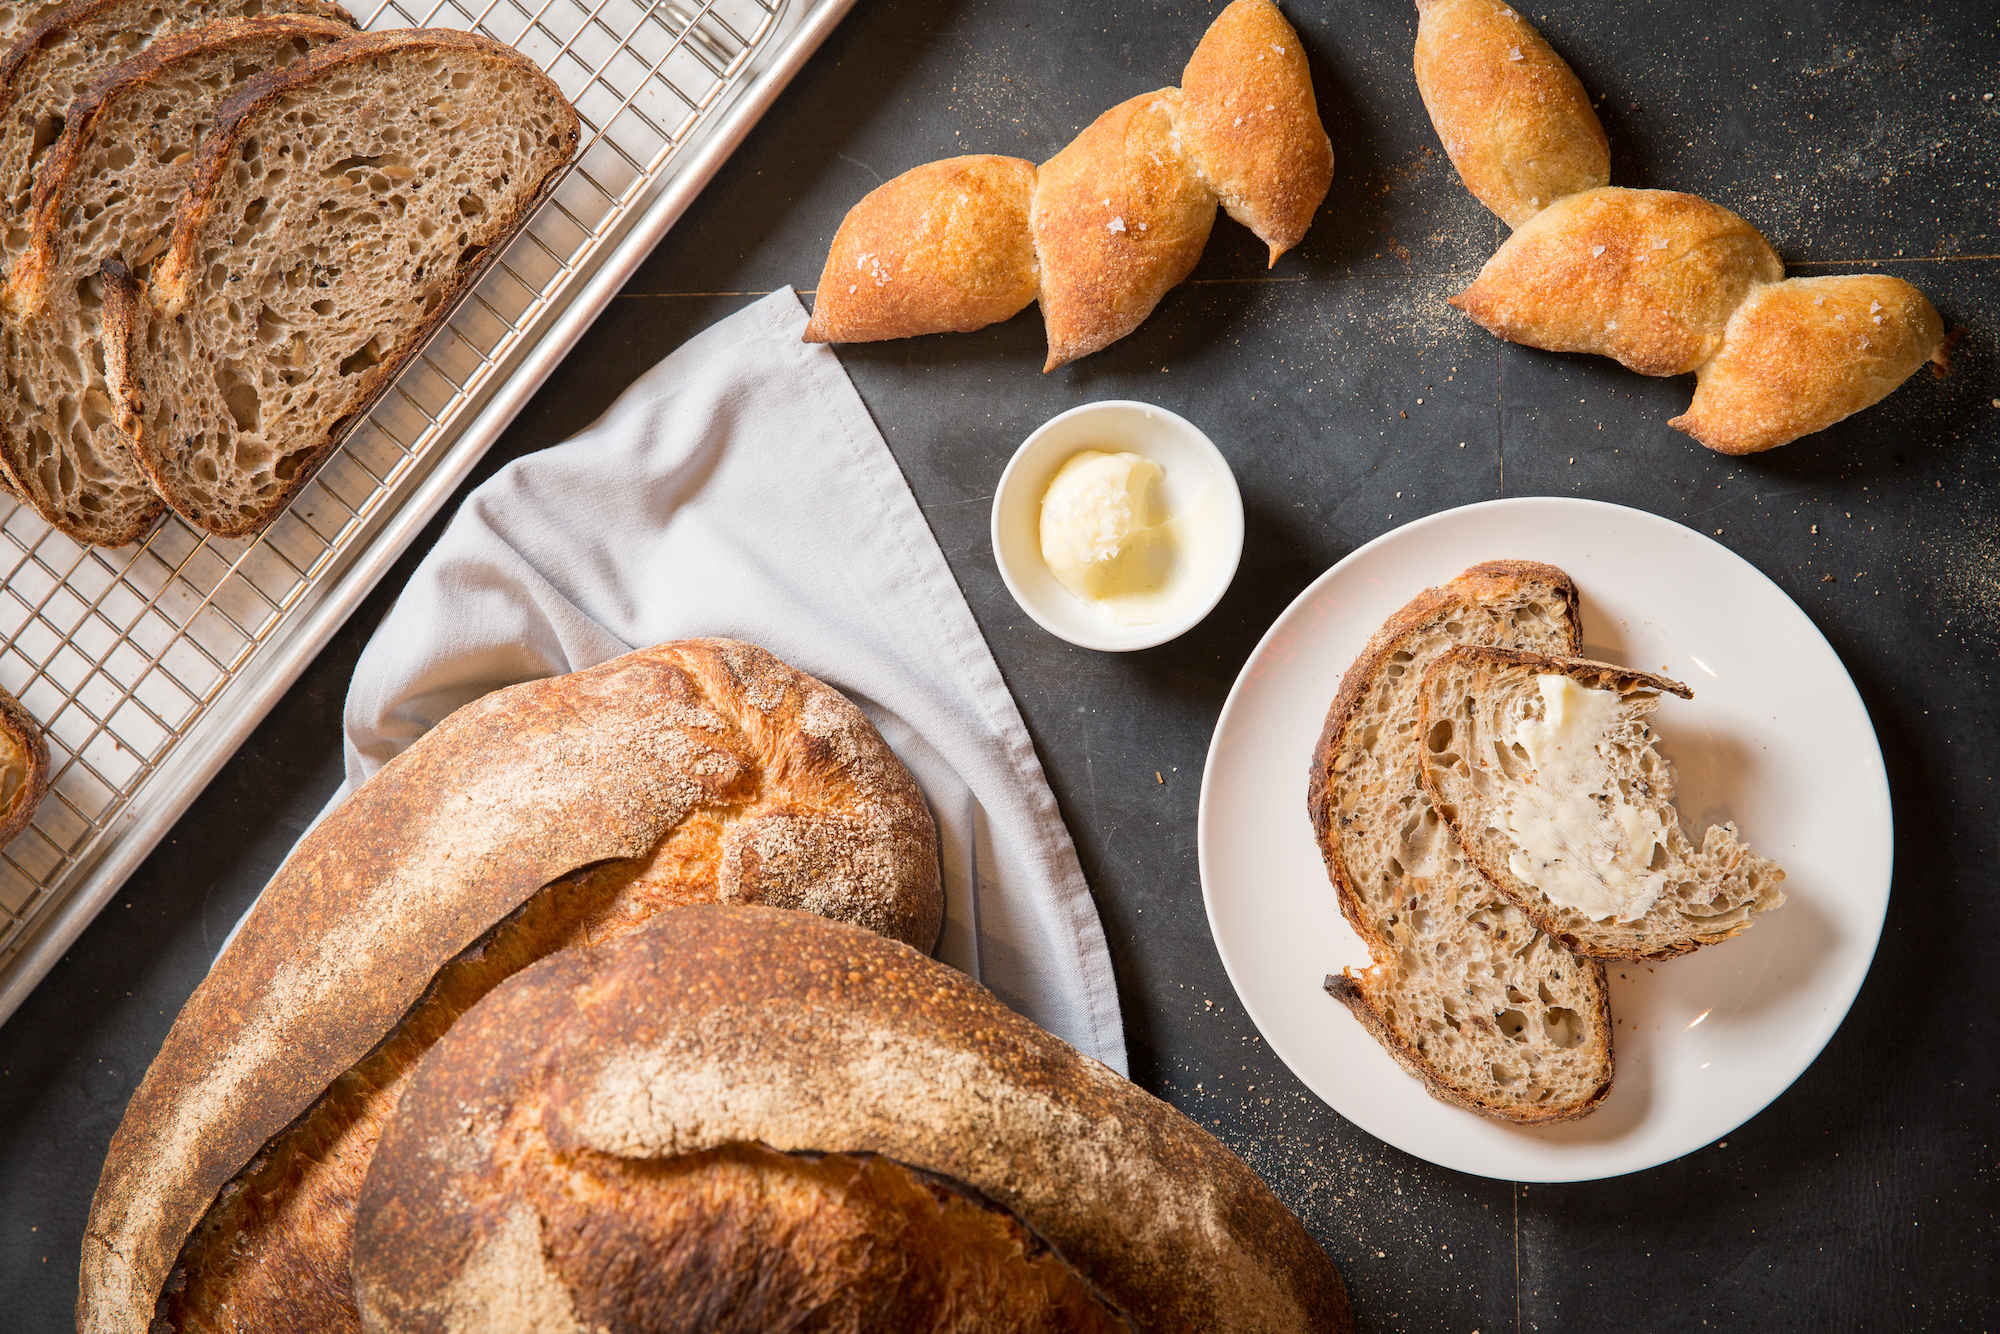 Where to find amazing bread service in Chicago